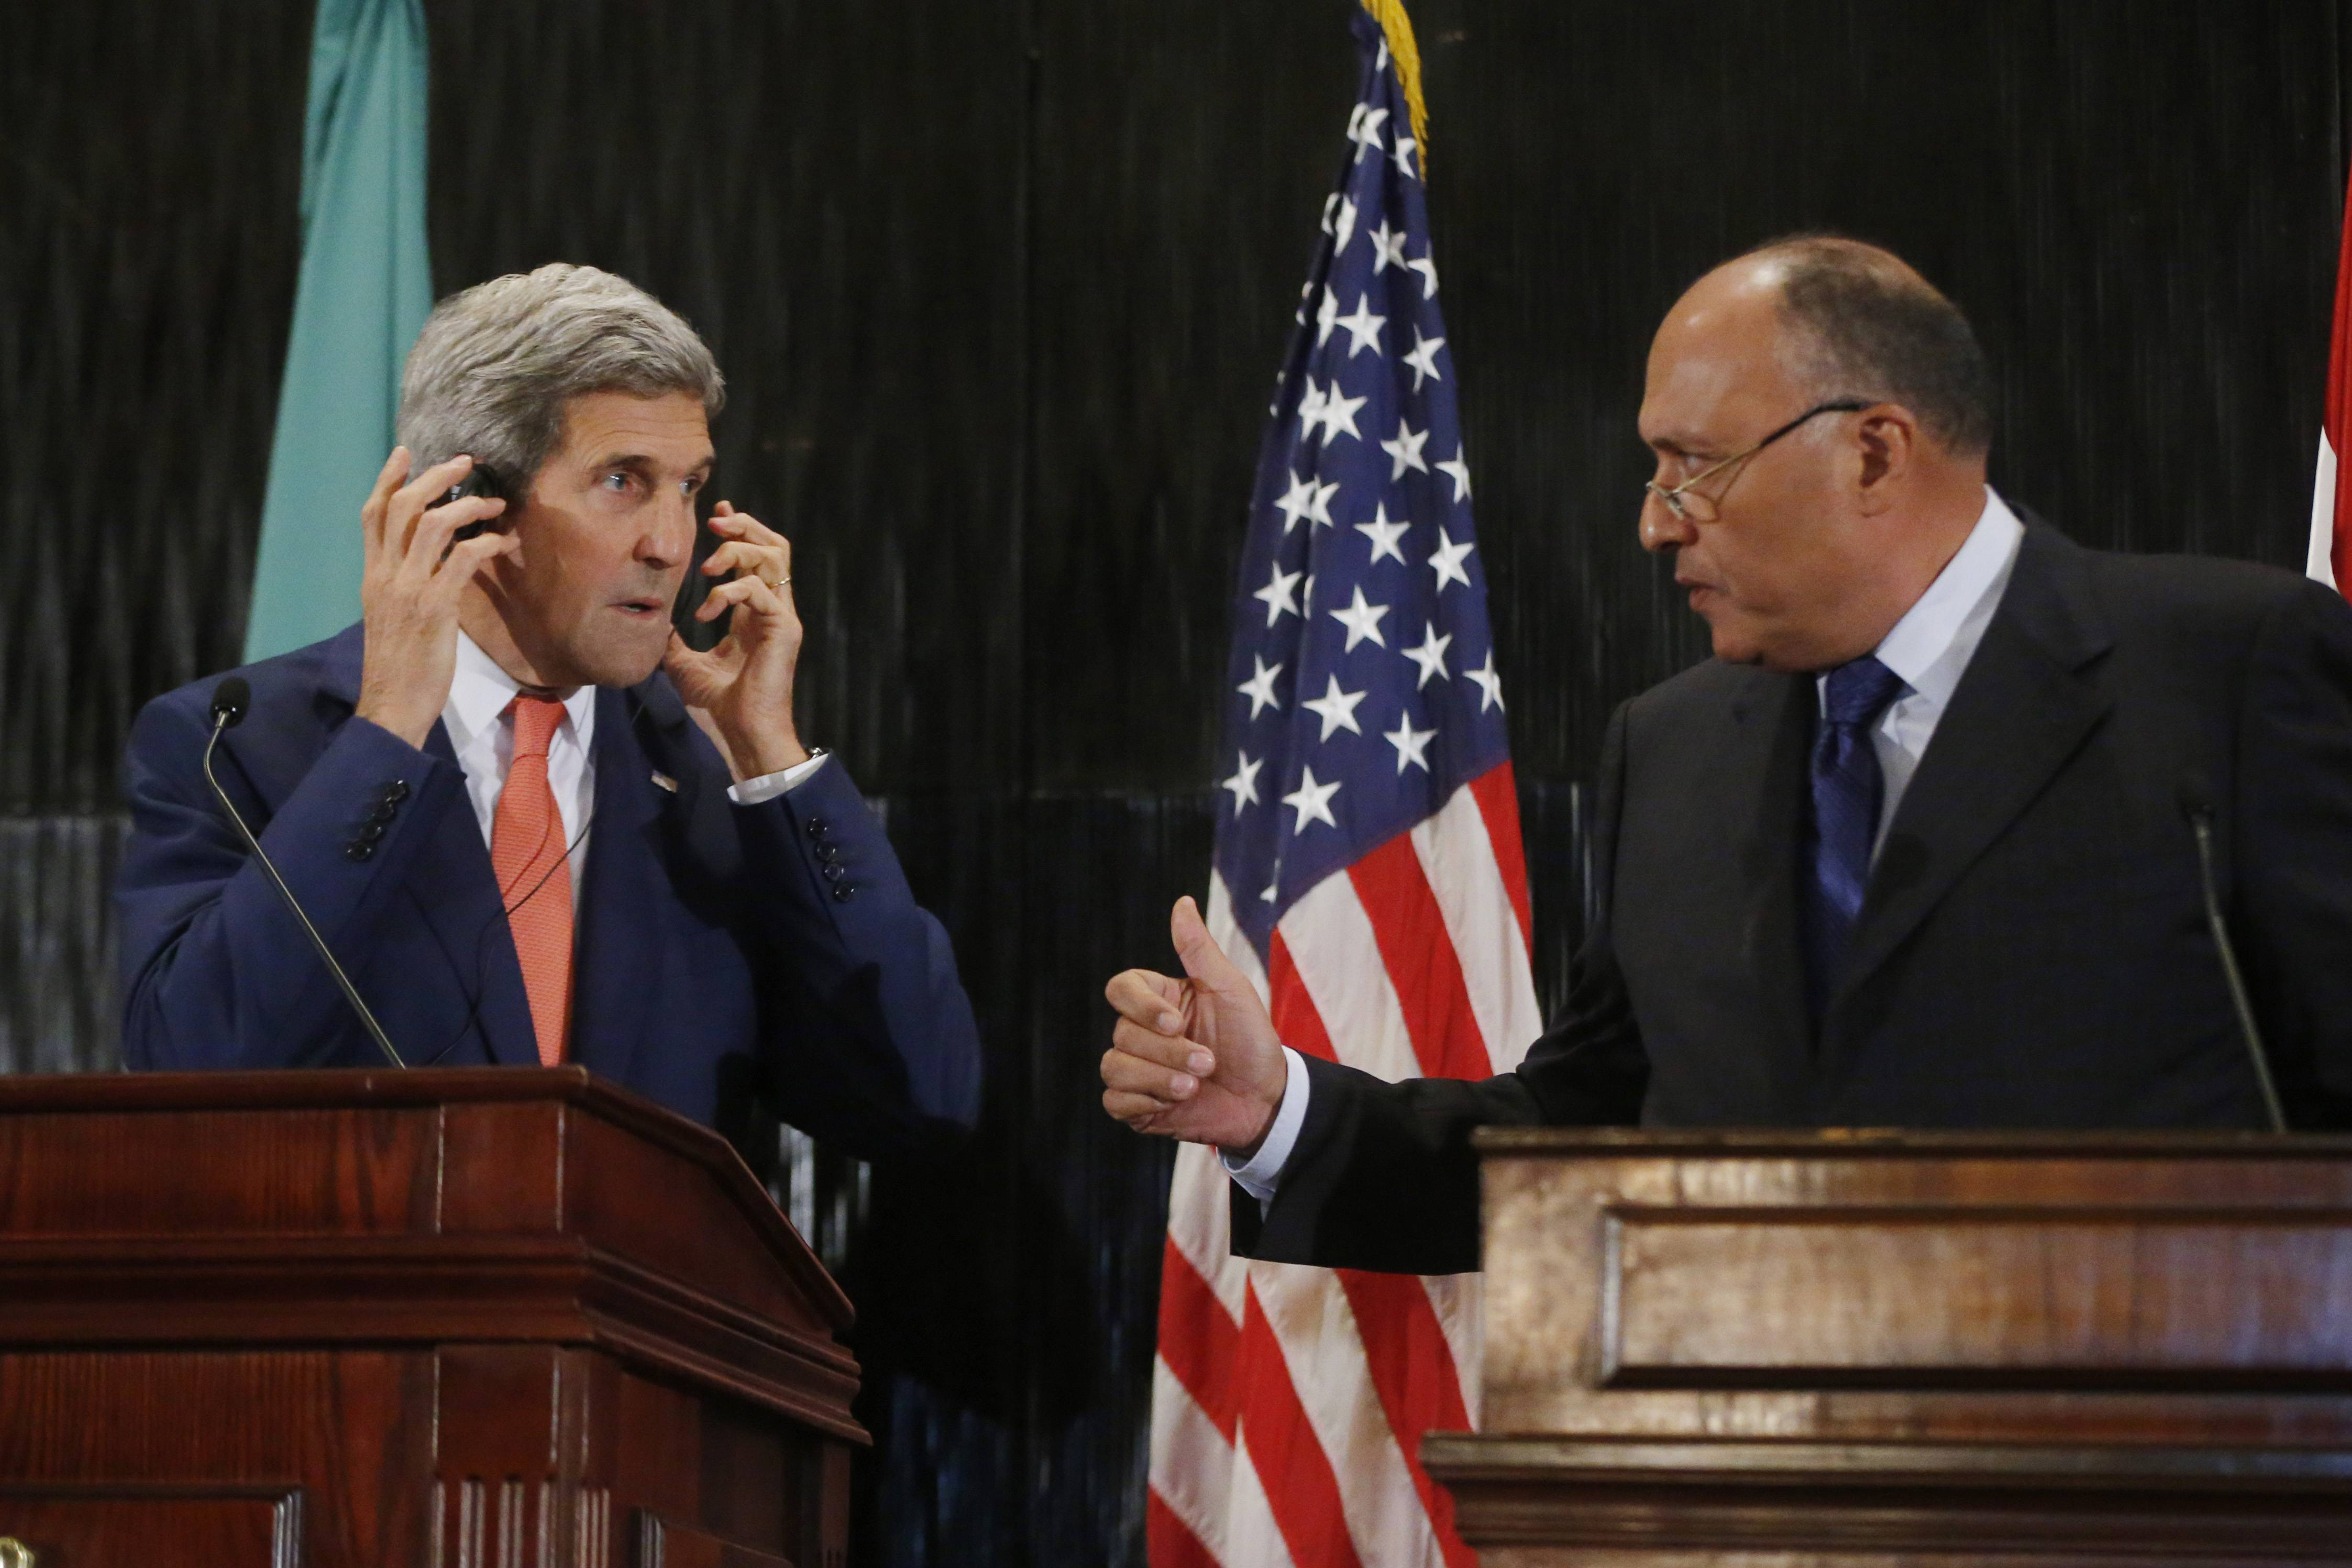 U.S. Secretary of State John Kerry stands with Egypt's Foreign Minister Sameh Shukri during a news conference at a hotel in Cairo, Egypt, Friday. Kerry said he has not yet reached a deal between Israel and Hamas to call a 7-day humanitarian truce in the Gaza war but is continuing work.